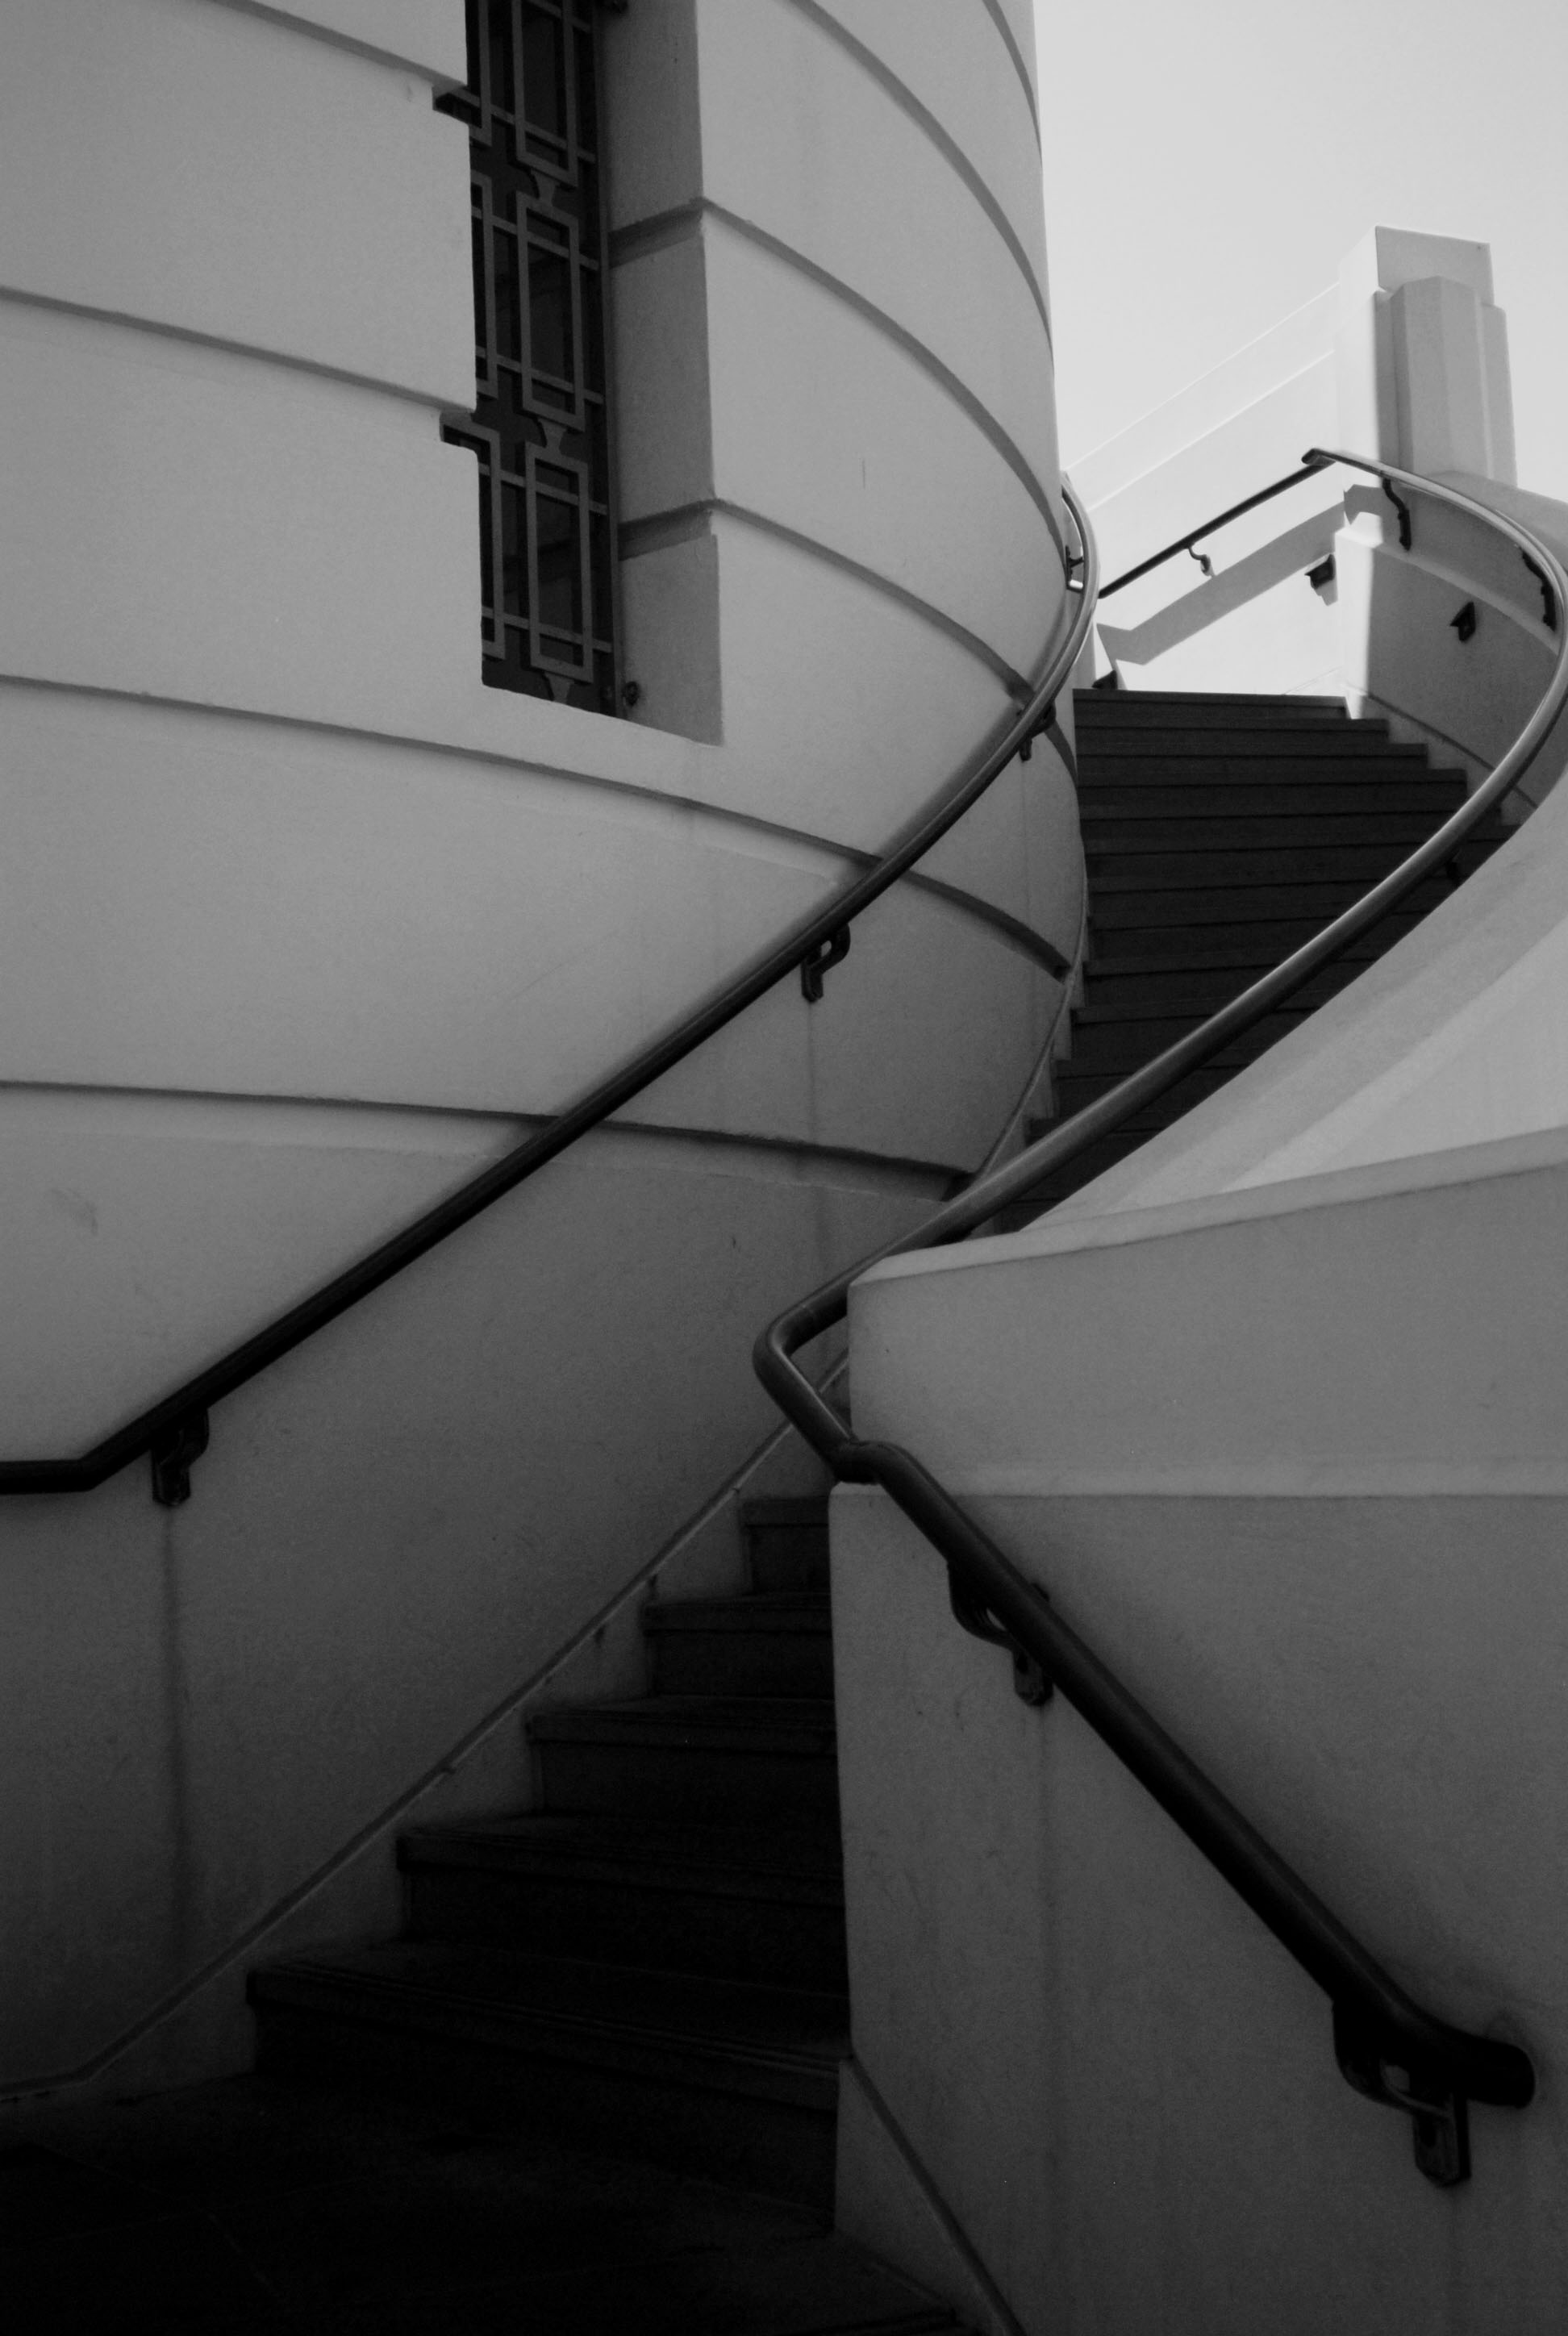 GriffithObservatory_BW Stairwell1.jpg